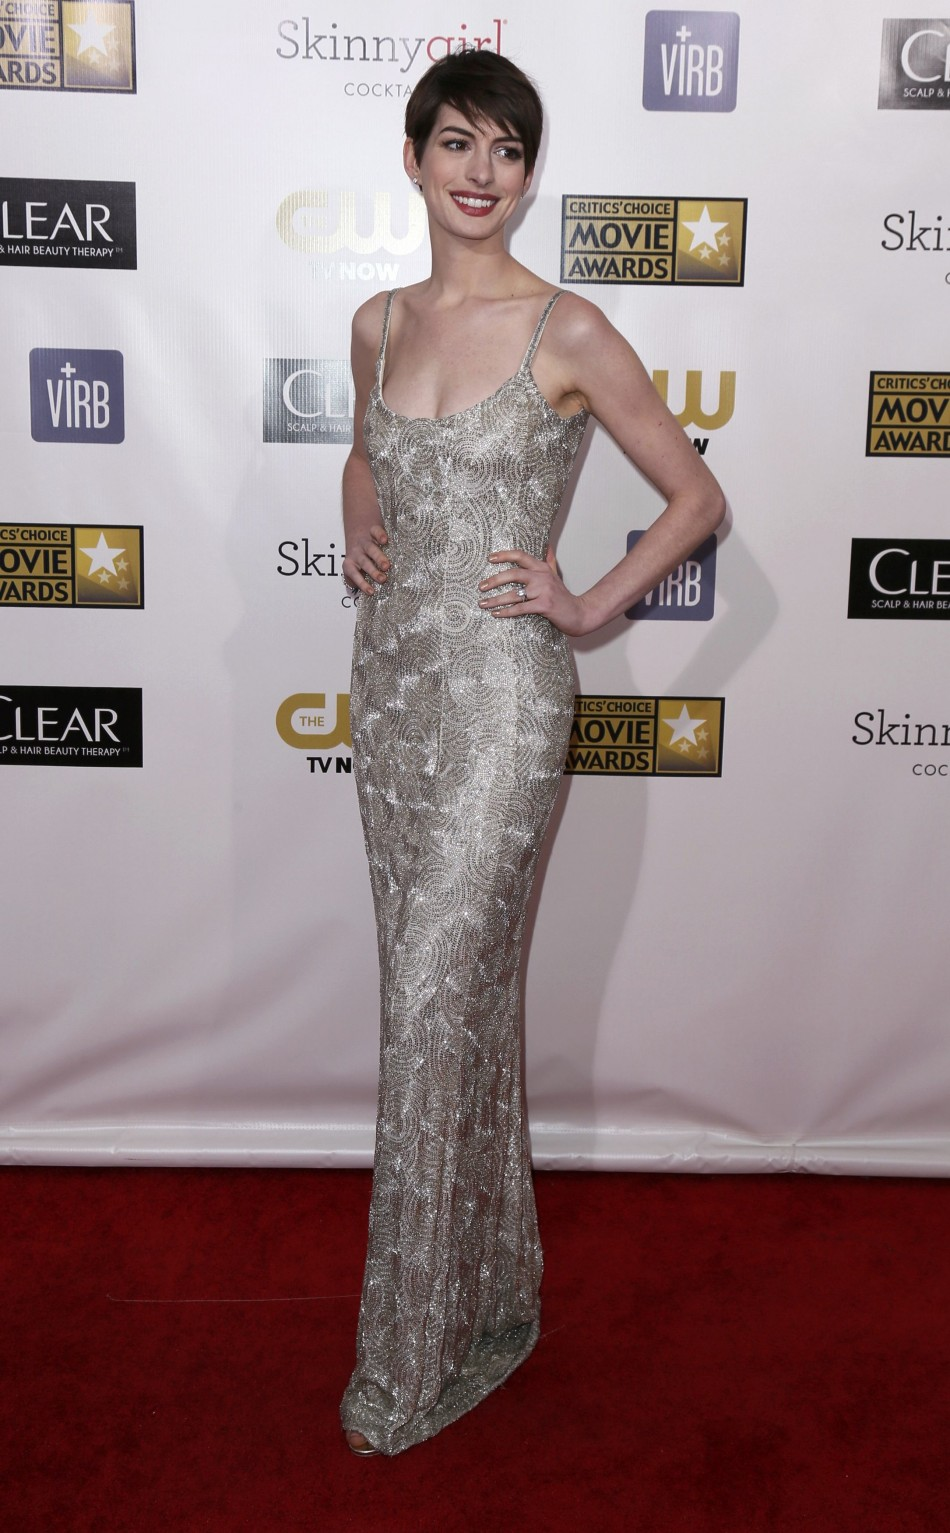 Actress Anne Hathaway from the film Les Miserables poses on arrival at the 2013 Critics Choice Awards in Santa Monica